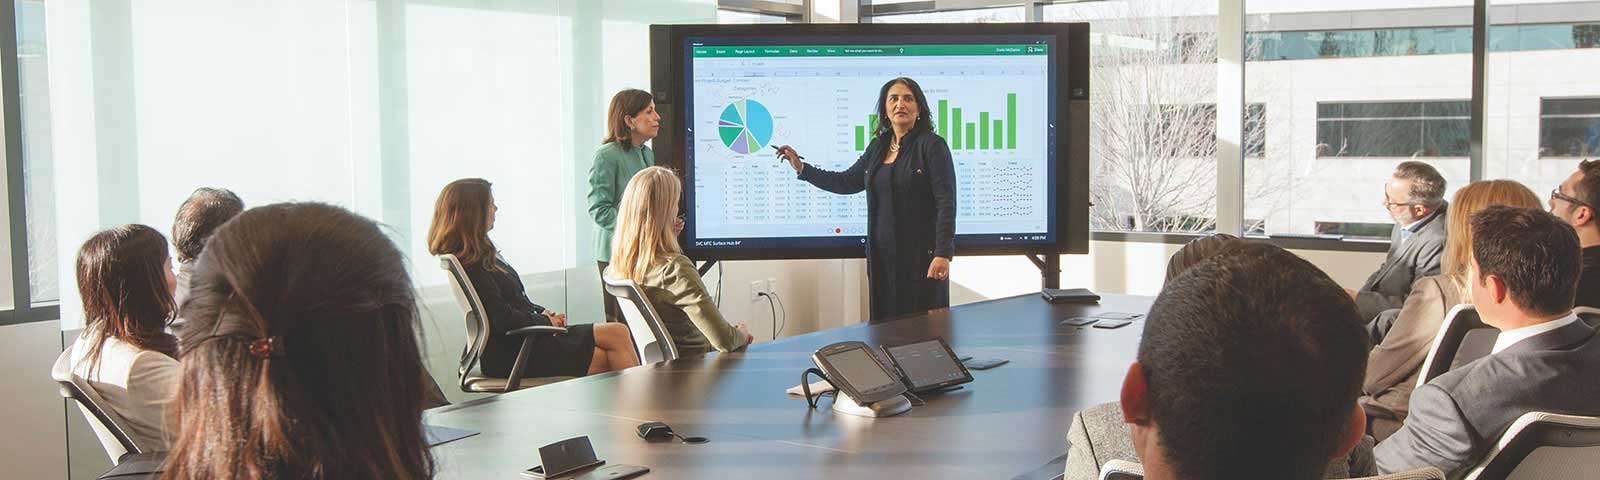 Woman presenting on smartboard in front of coworkers